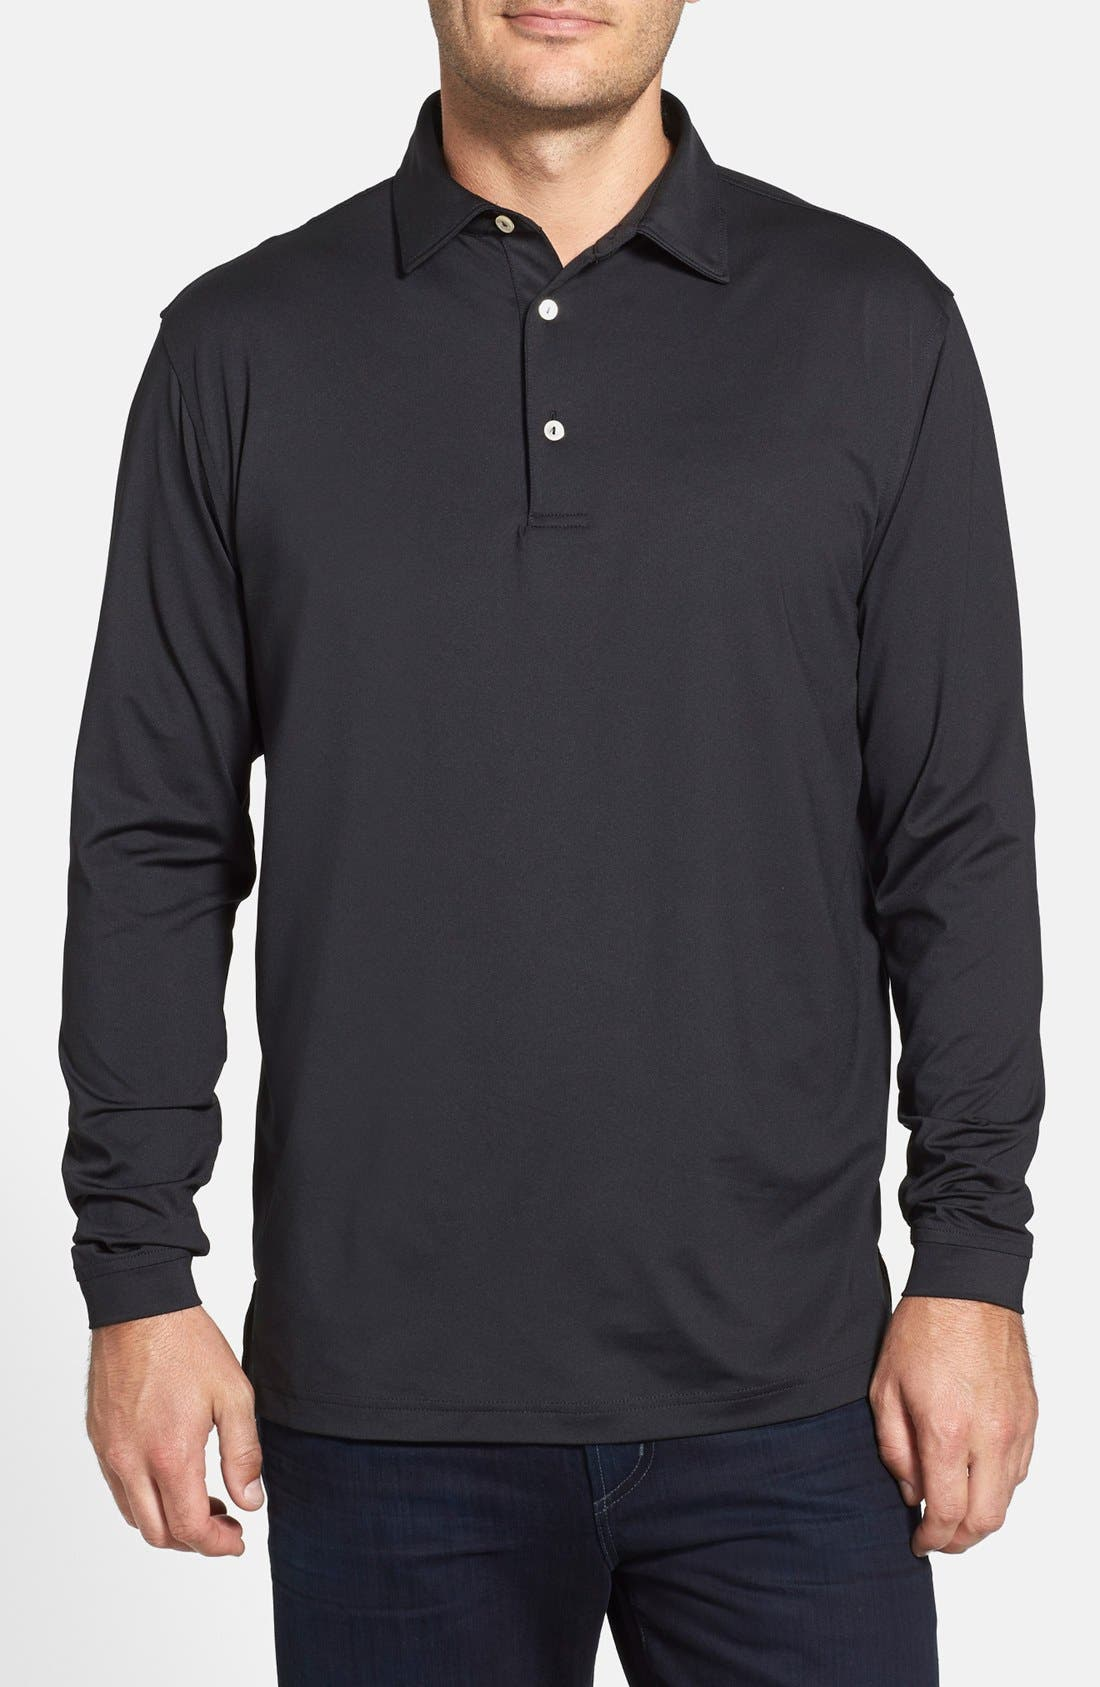 Alternate Image 1 Selected - Peter Millar Moisture Wicking Stretch Long Sleeve Polo